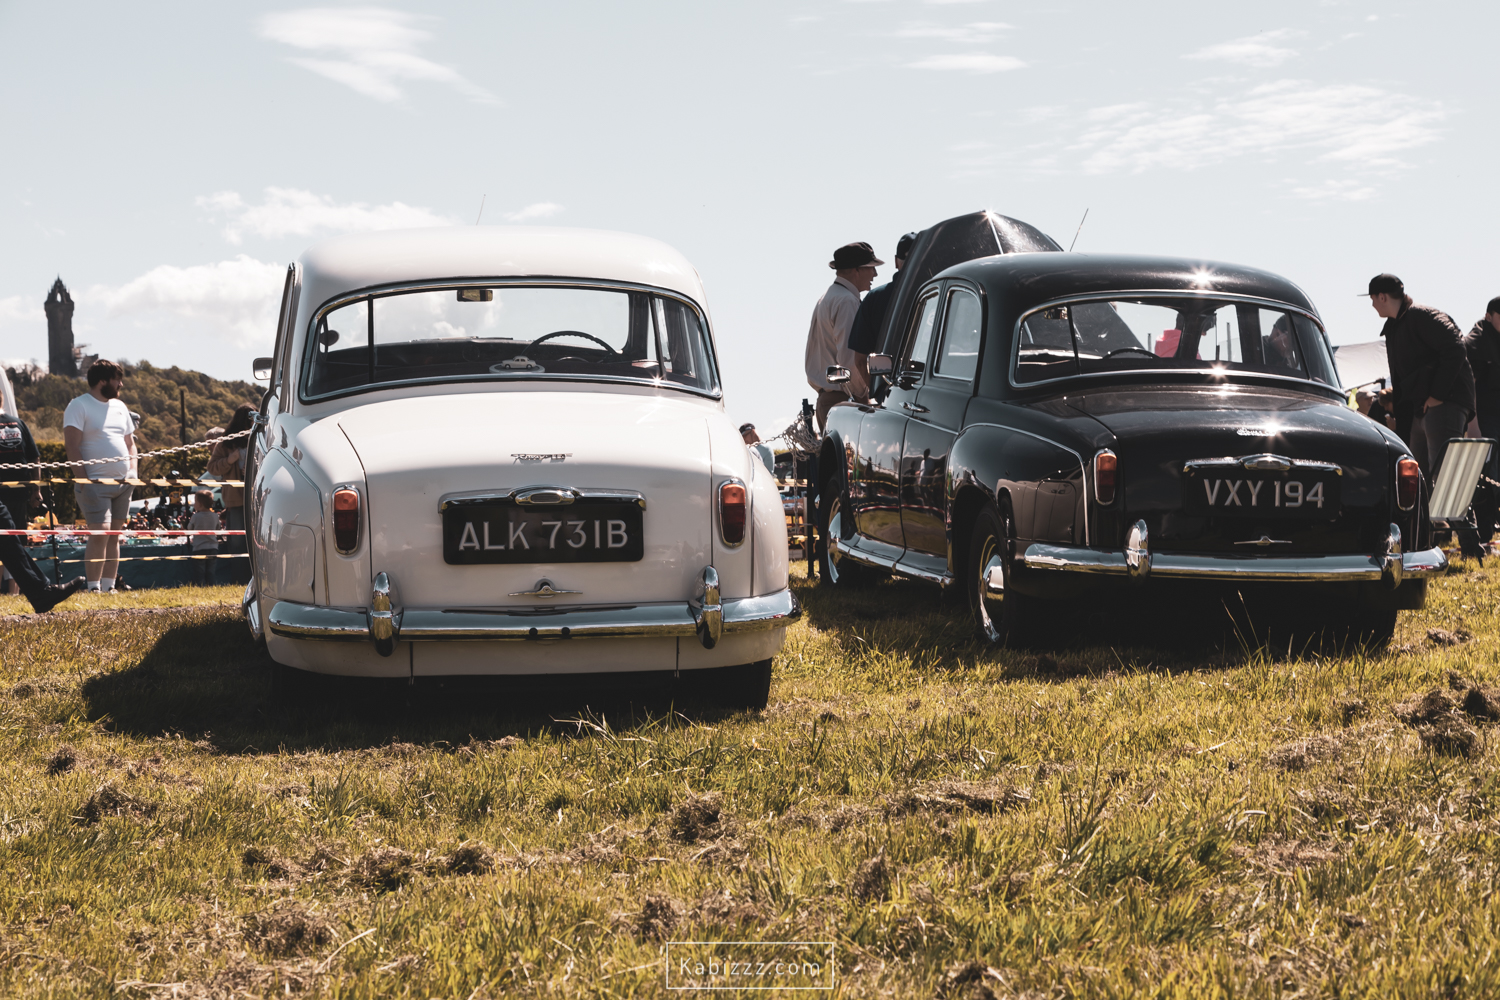 Kabizzz_Photography_Stirling_District_Classic _cars-133.jpg